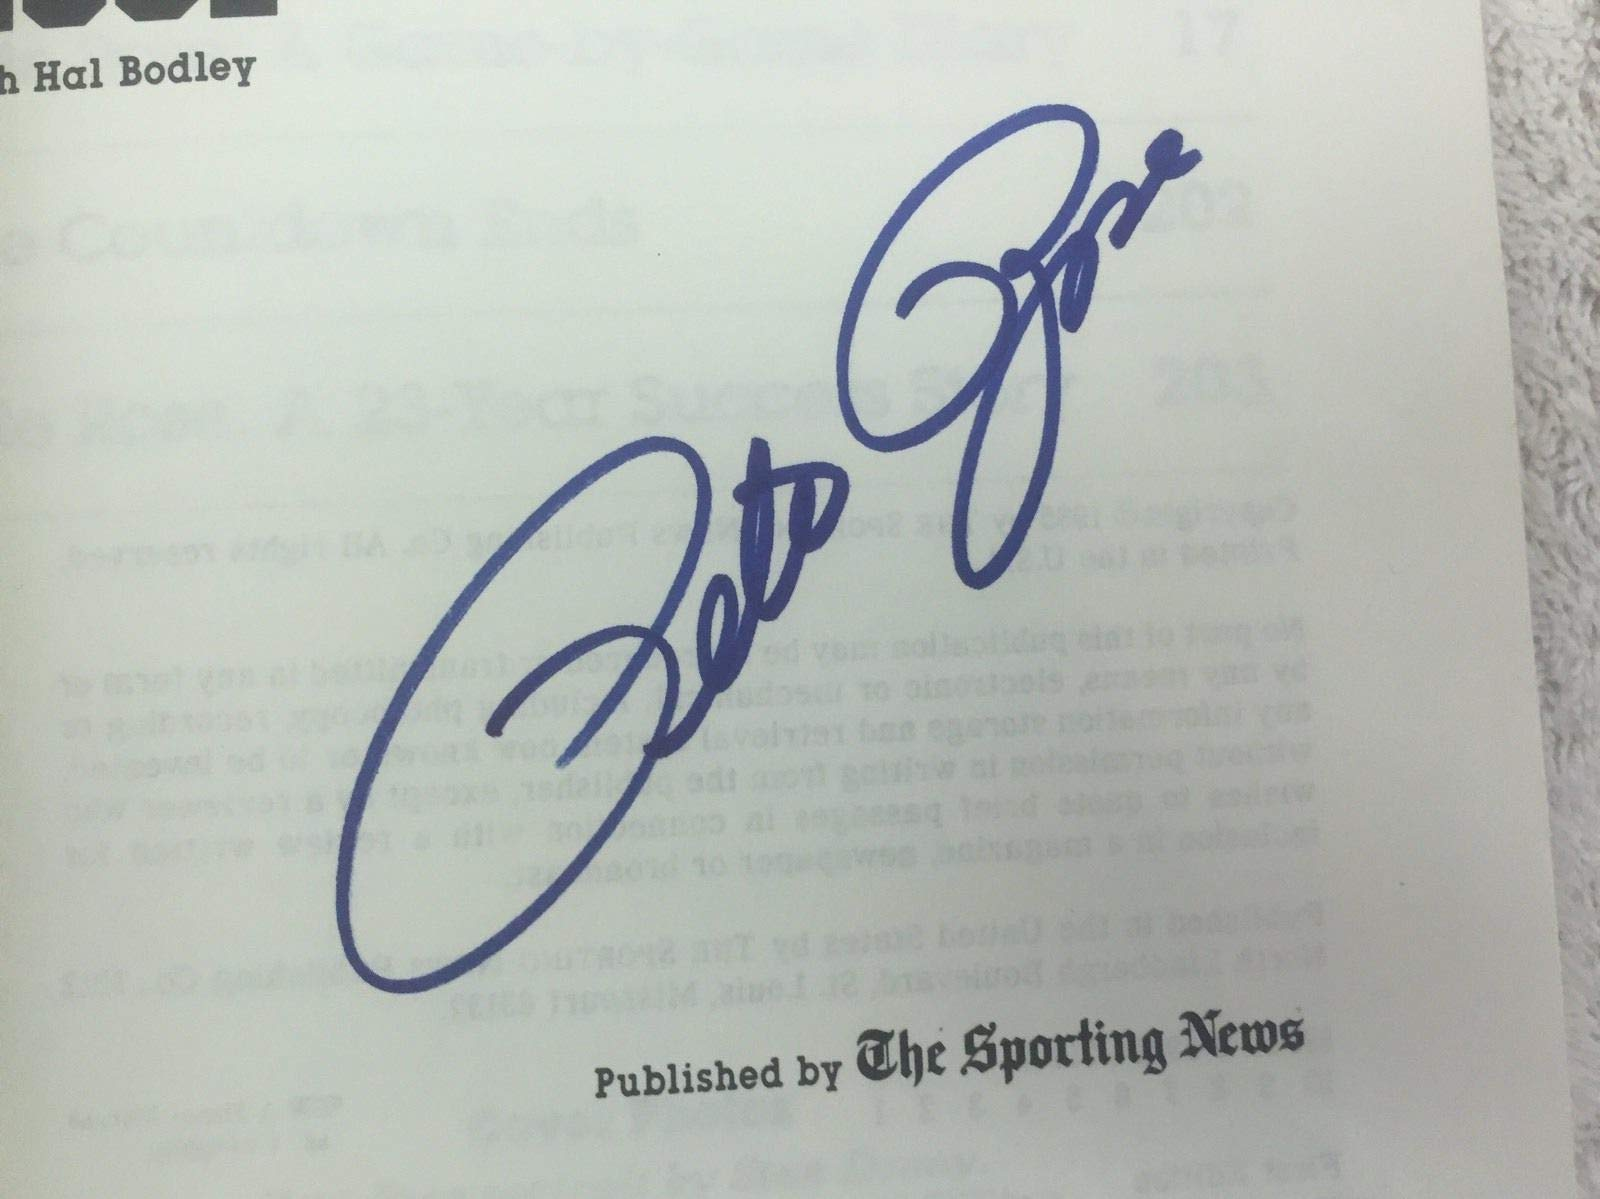 Pete Rose Cincinnati Reds Countdown To Cobb Autographed Signed Book JSA Authentic First Edition